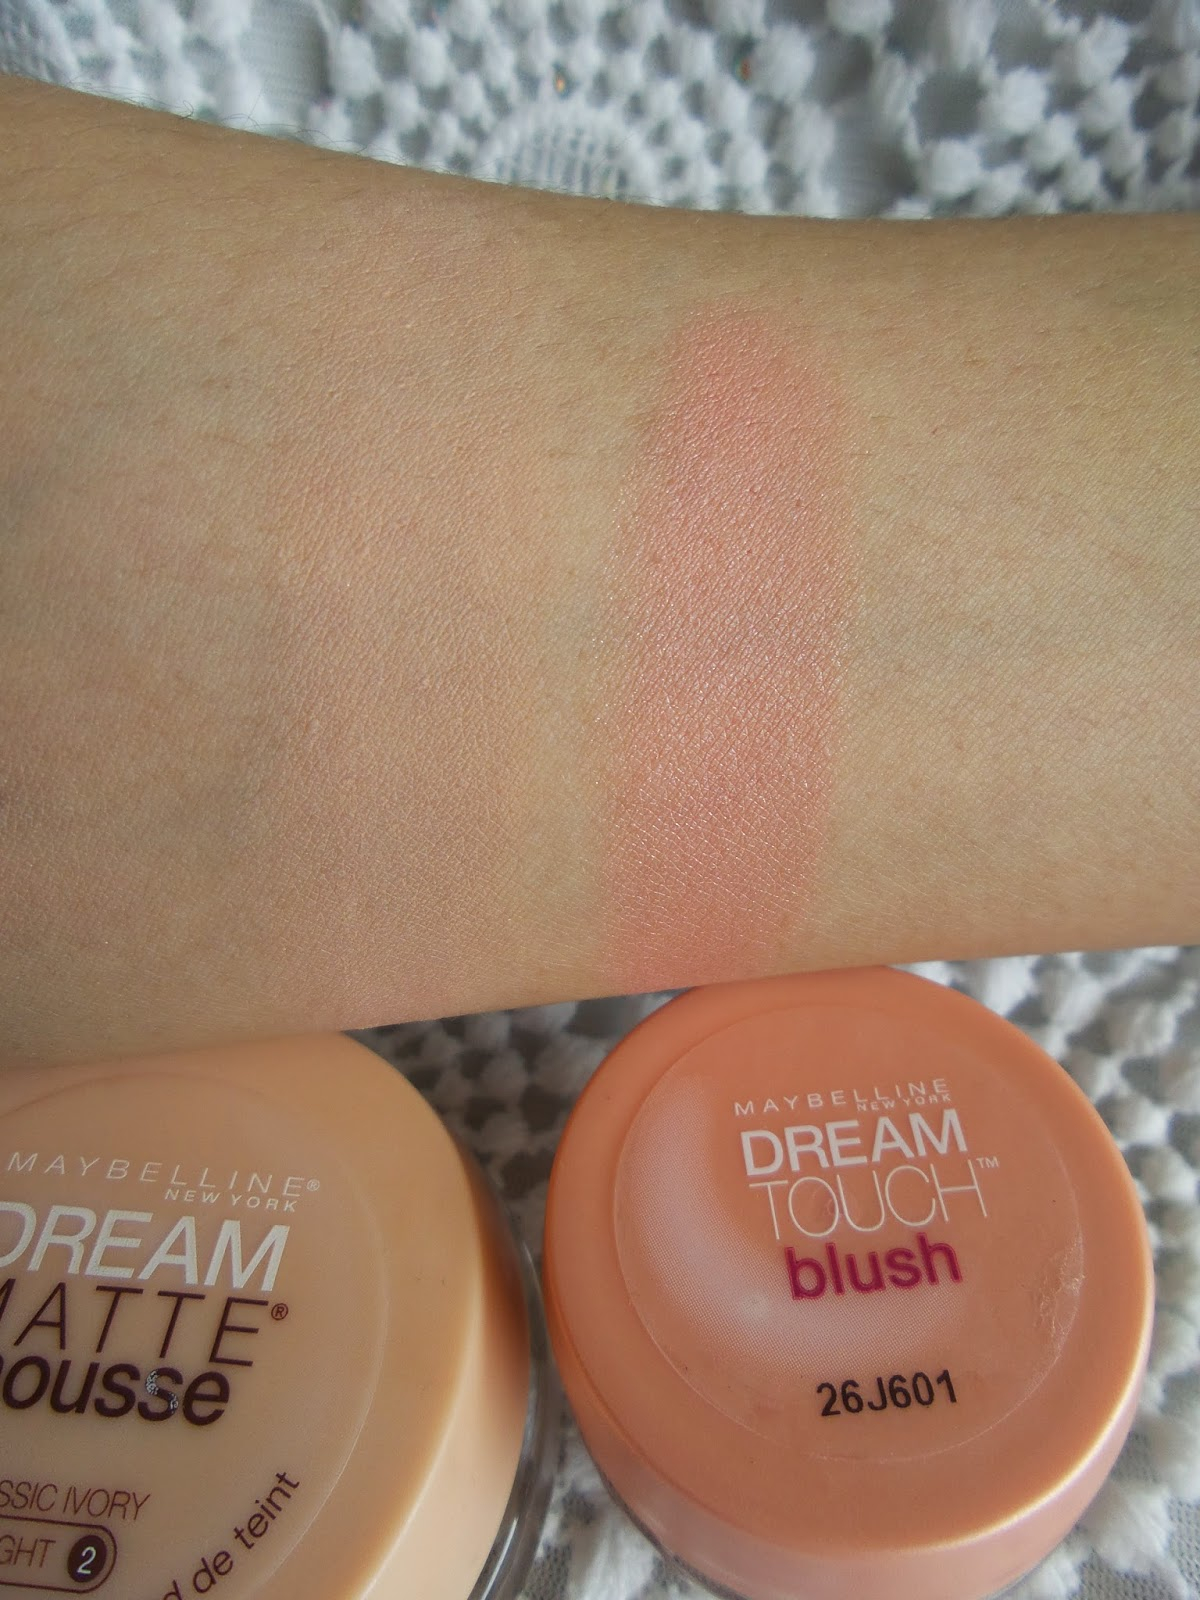 Base mousse Maybelline e Blush Dream Touch